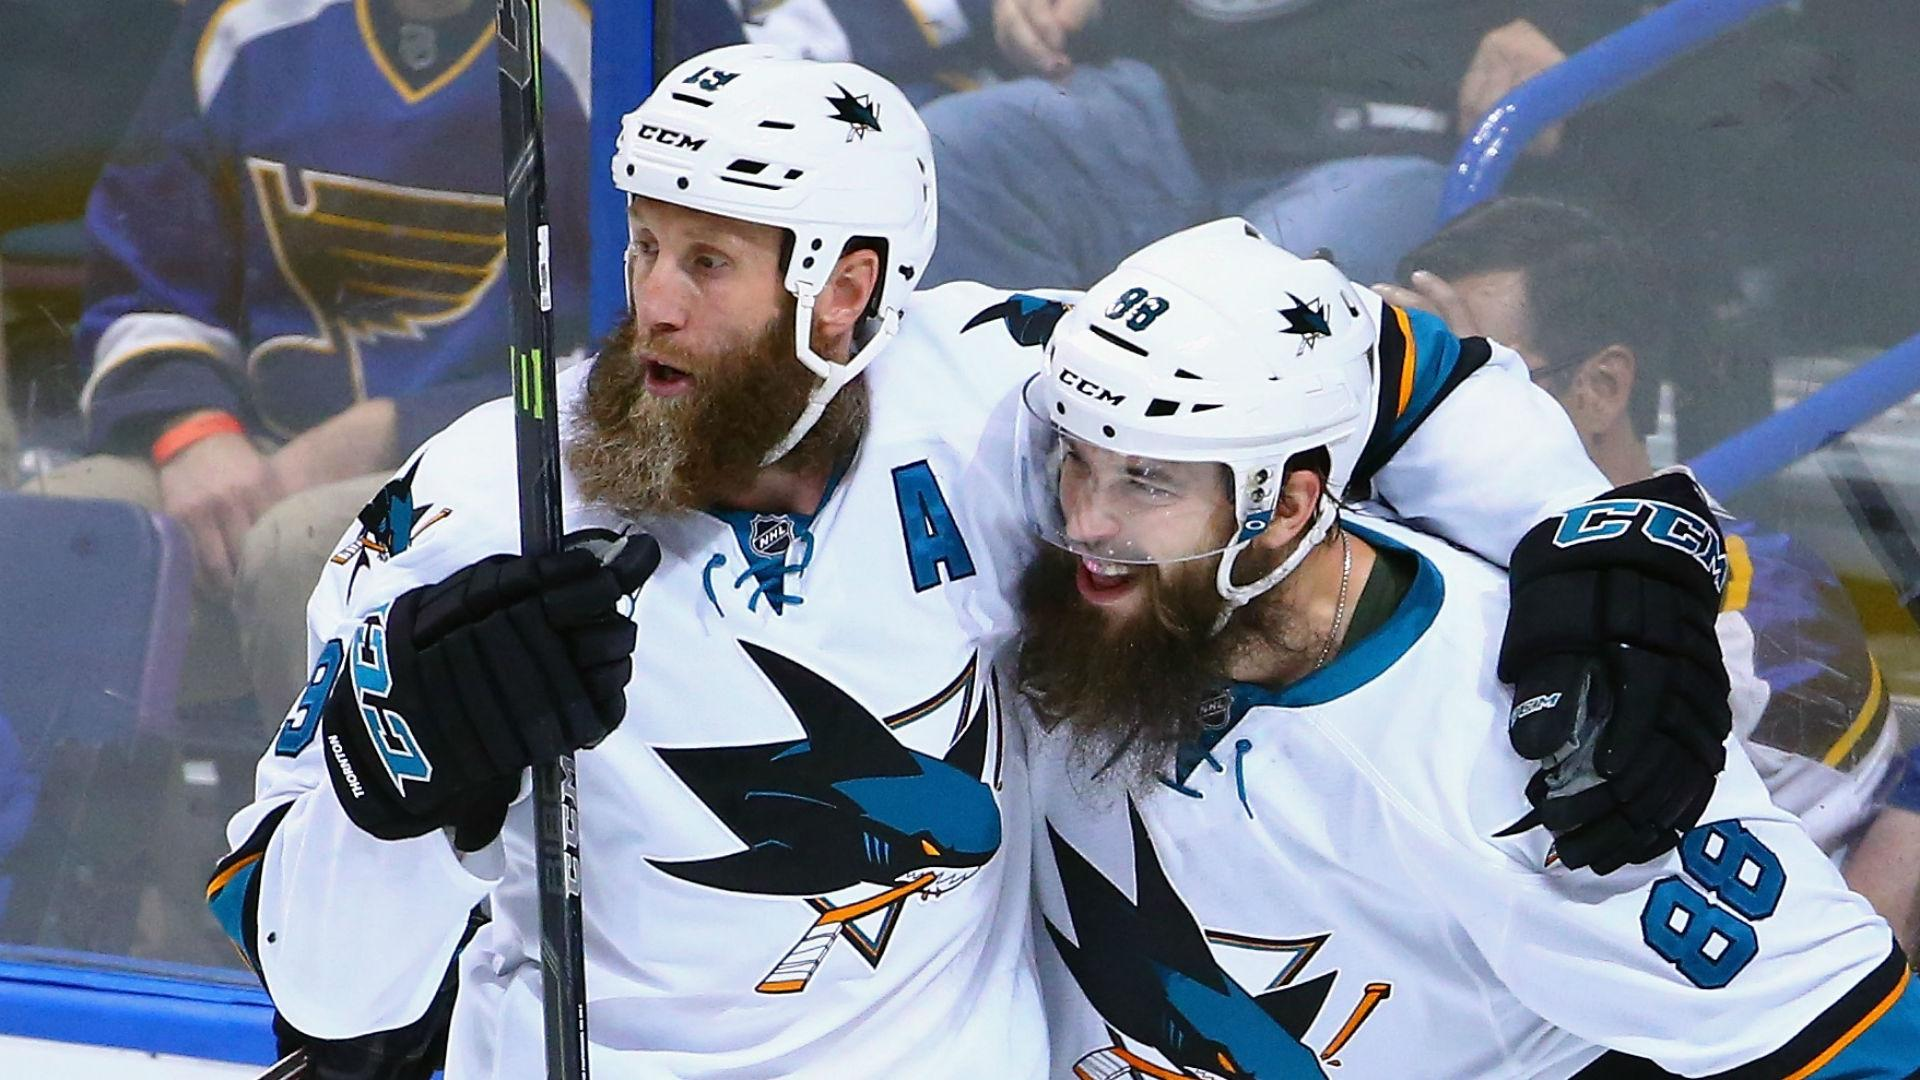 Joe Thornton, Brent Burns pose nude for ESPN, in all their bearded